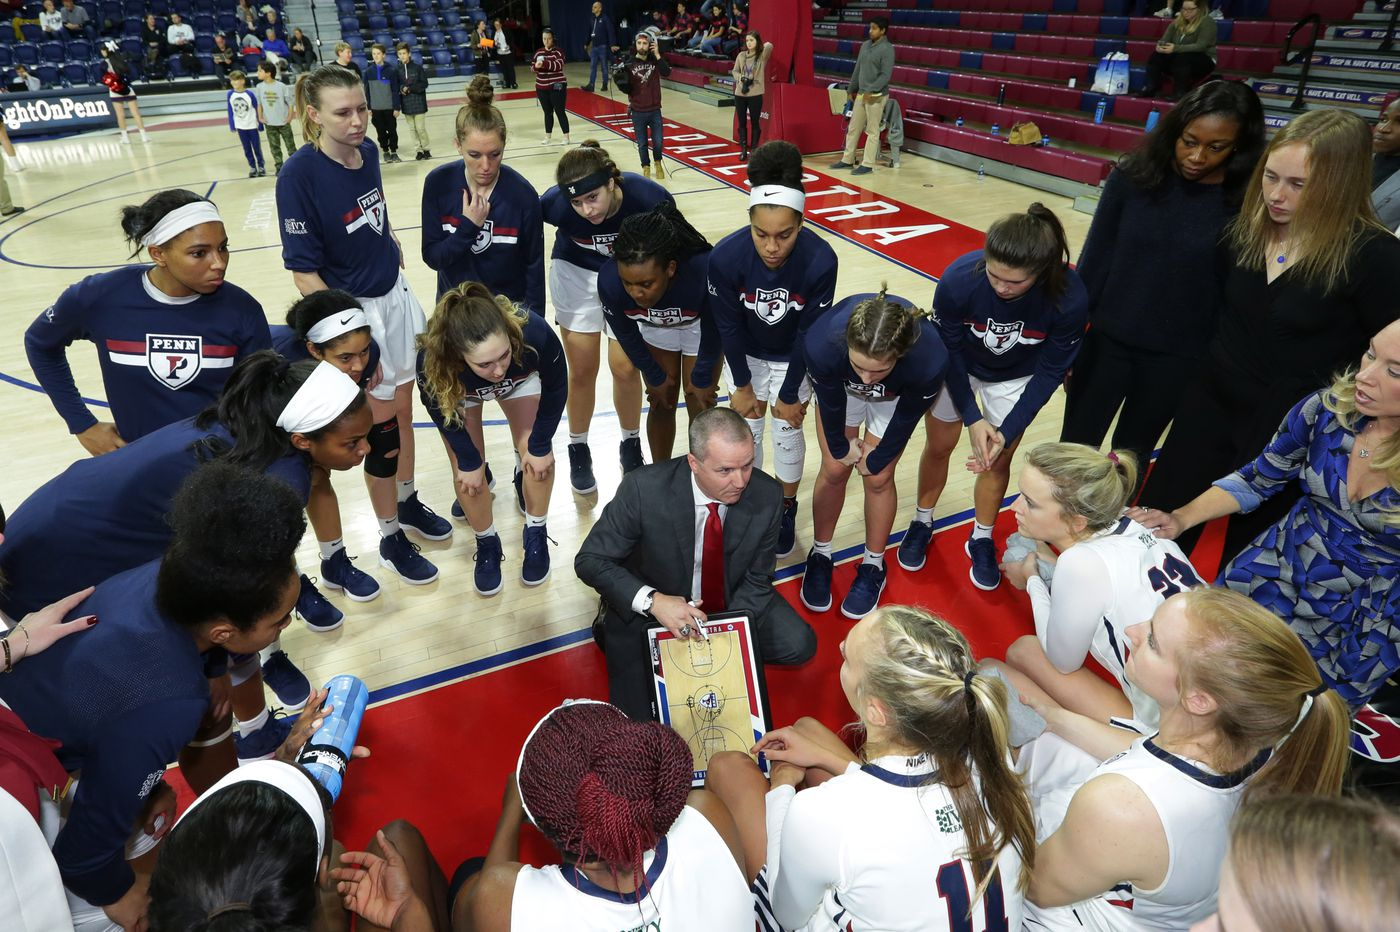 For City 6 women's teams, postseason fate to be determined by conference play